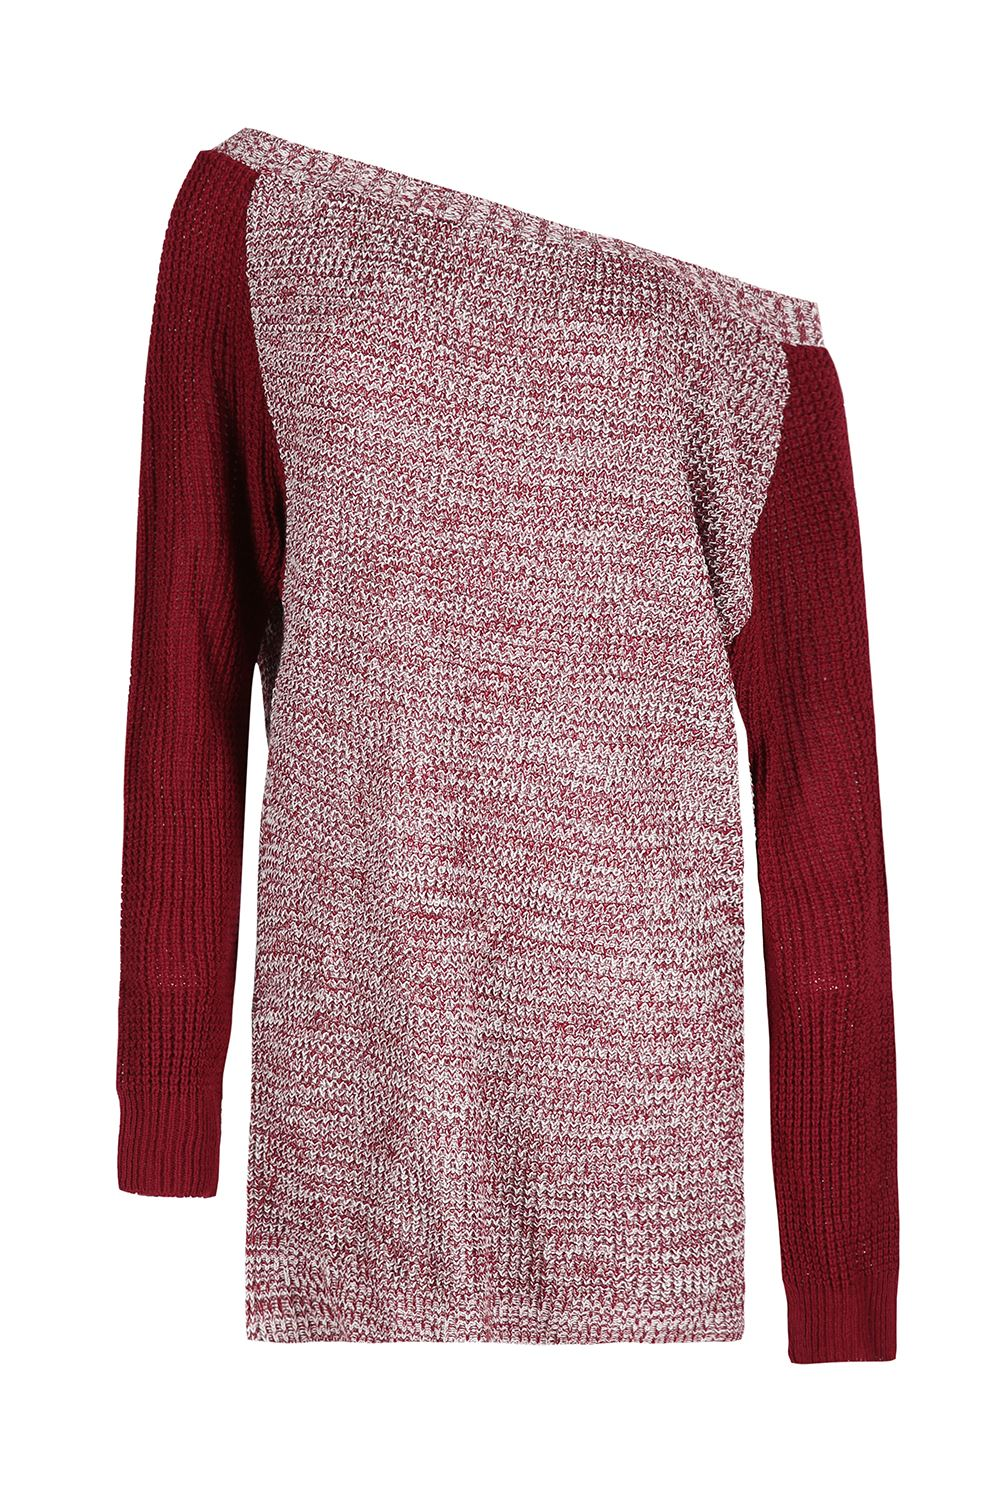 Womens-Oversized-Jumper-Ladies-Dress-Long-Sleeve-Chunky-Knitted-Long-Sweater-Top thumbnail 33